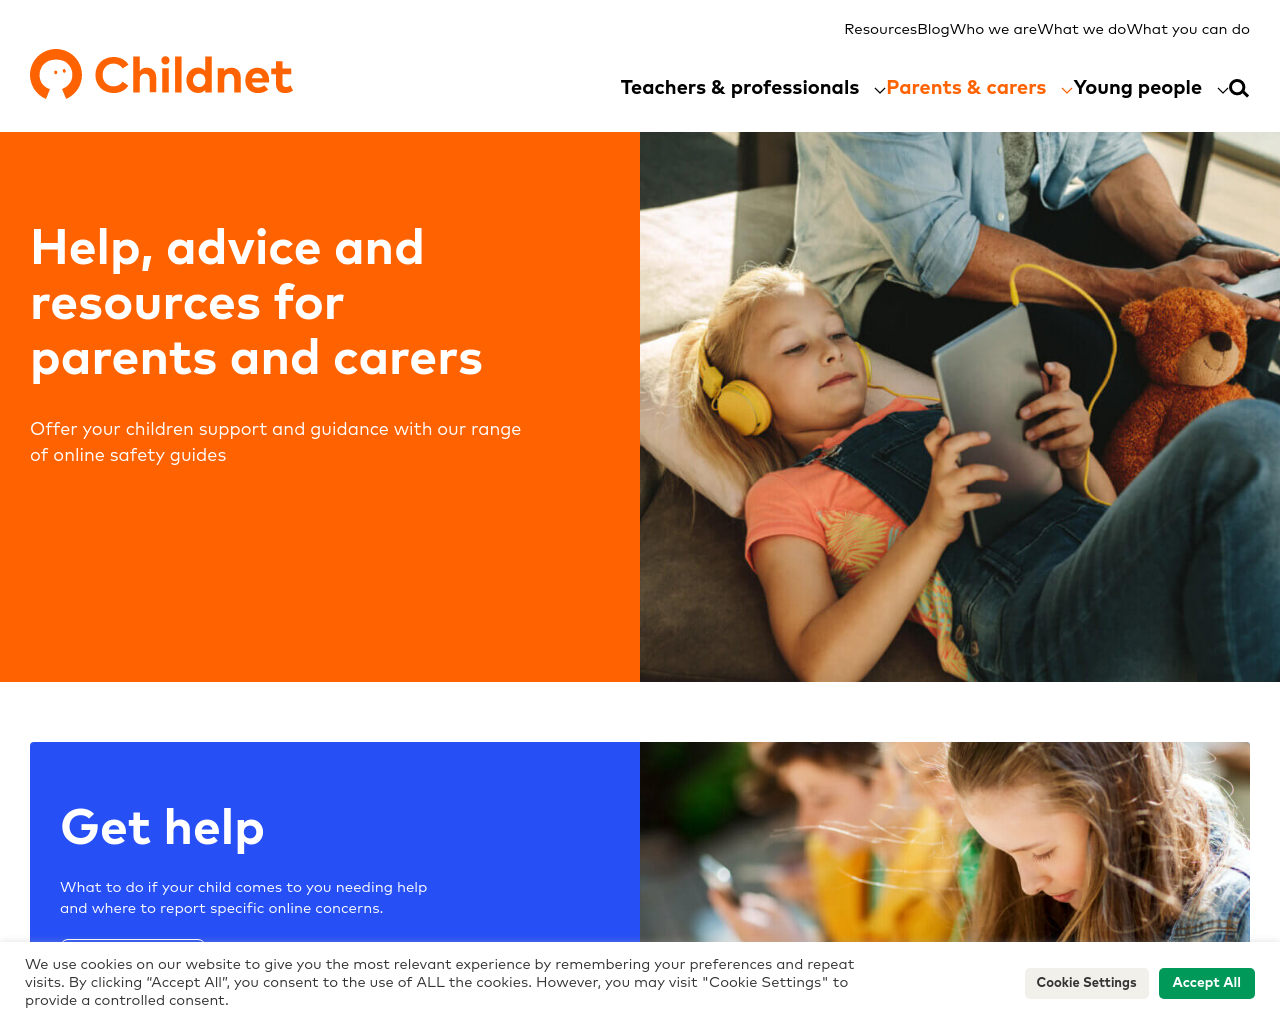 Childnet resources for parents and carers